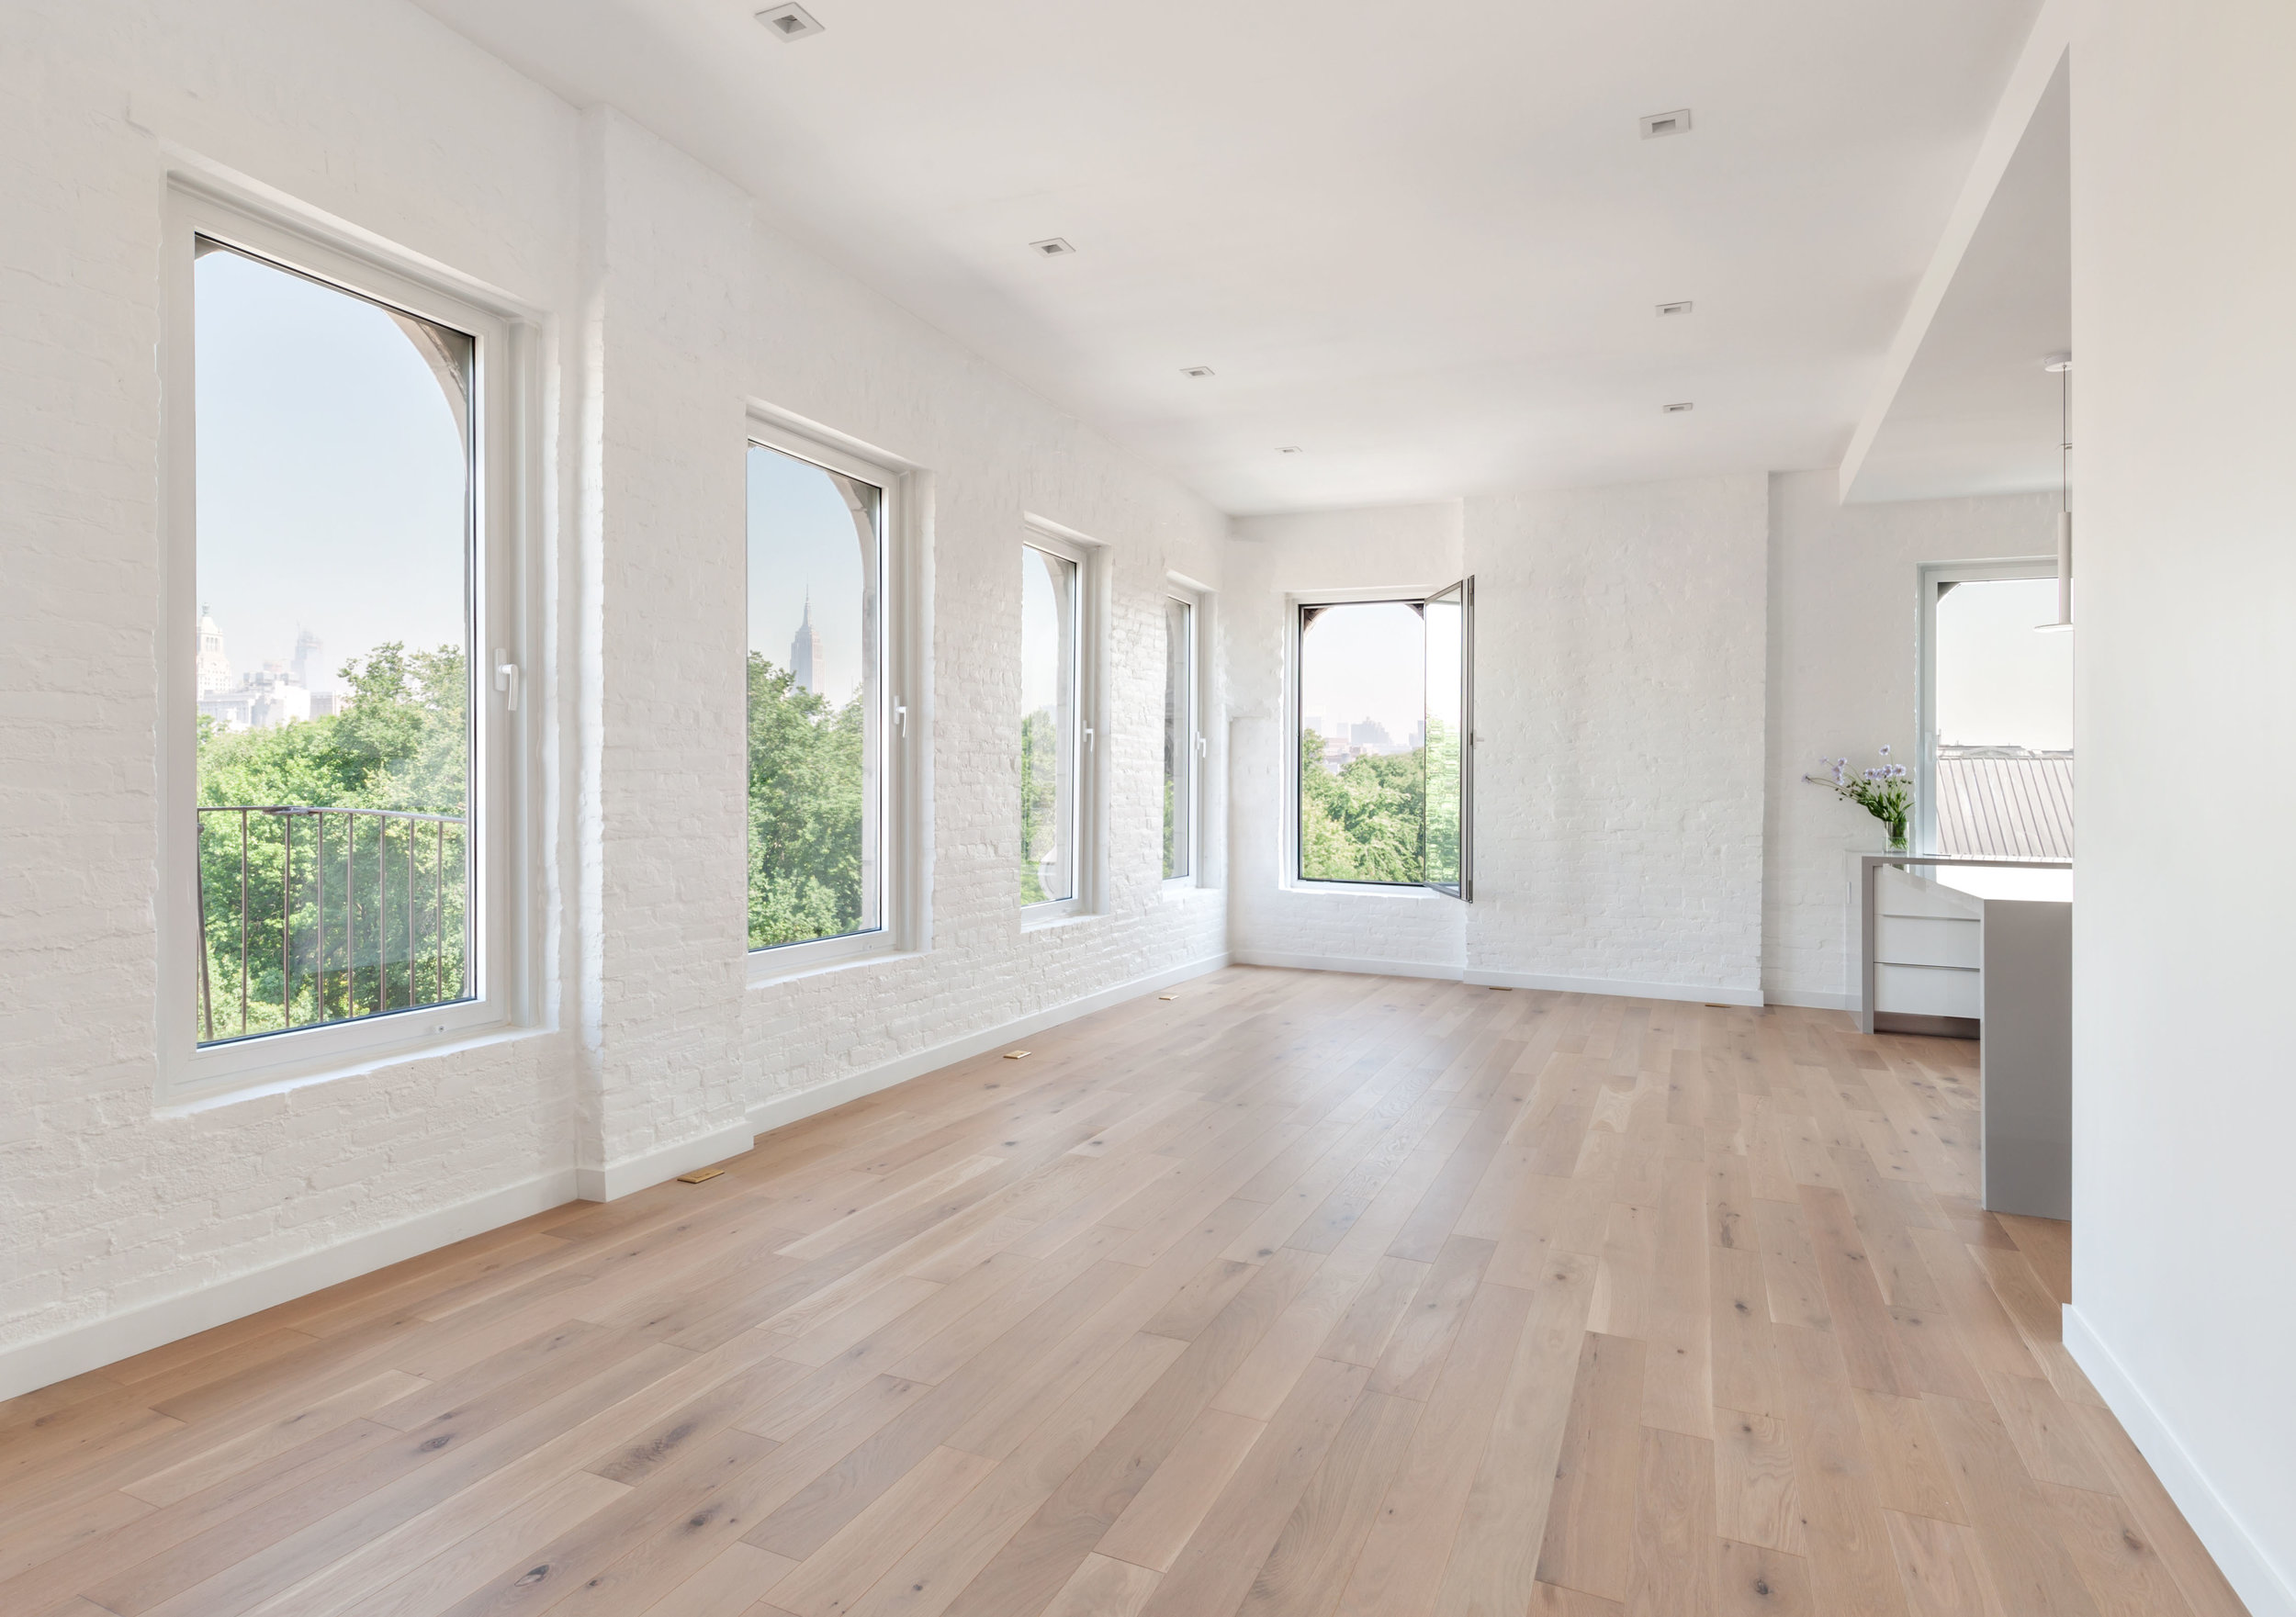 Warm, oak floors and white painted brick walls brighten space, providing a timeless, neutral canvas for years to come. New windows enhance the sweeping  skyline views.